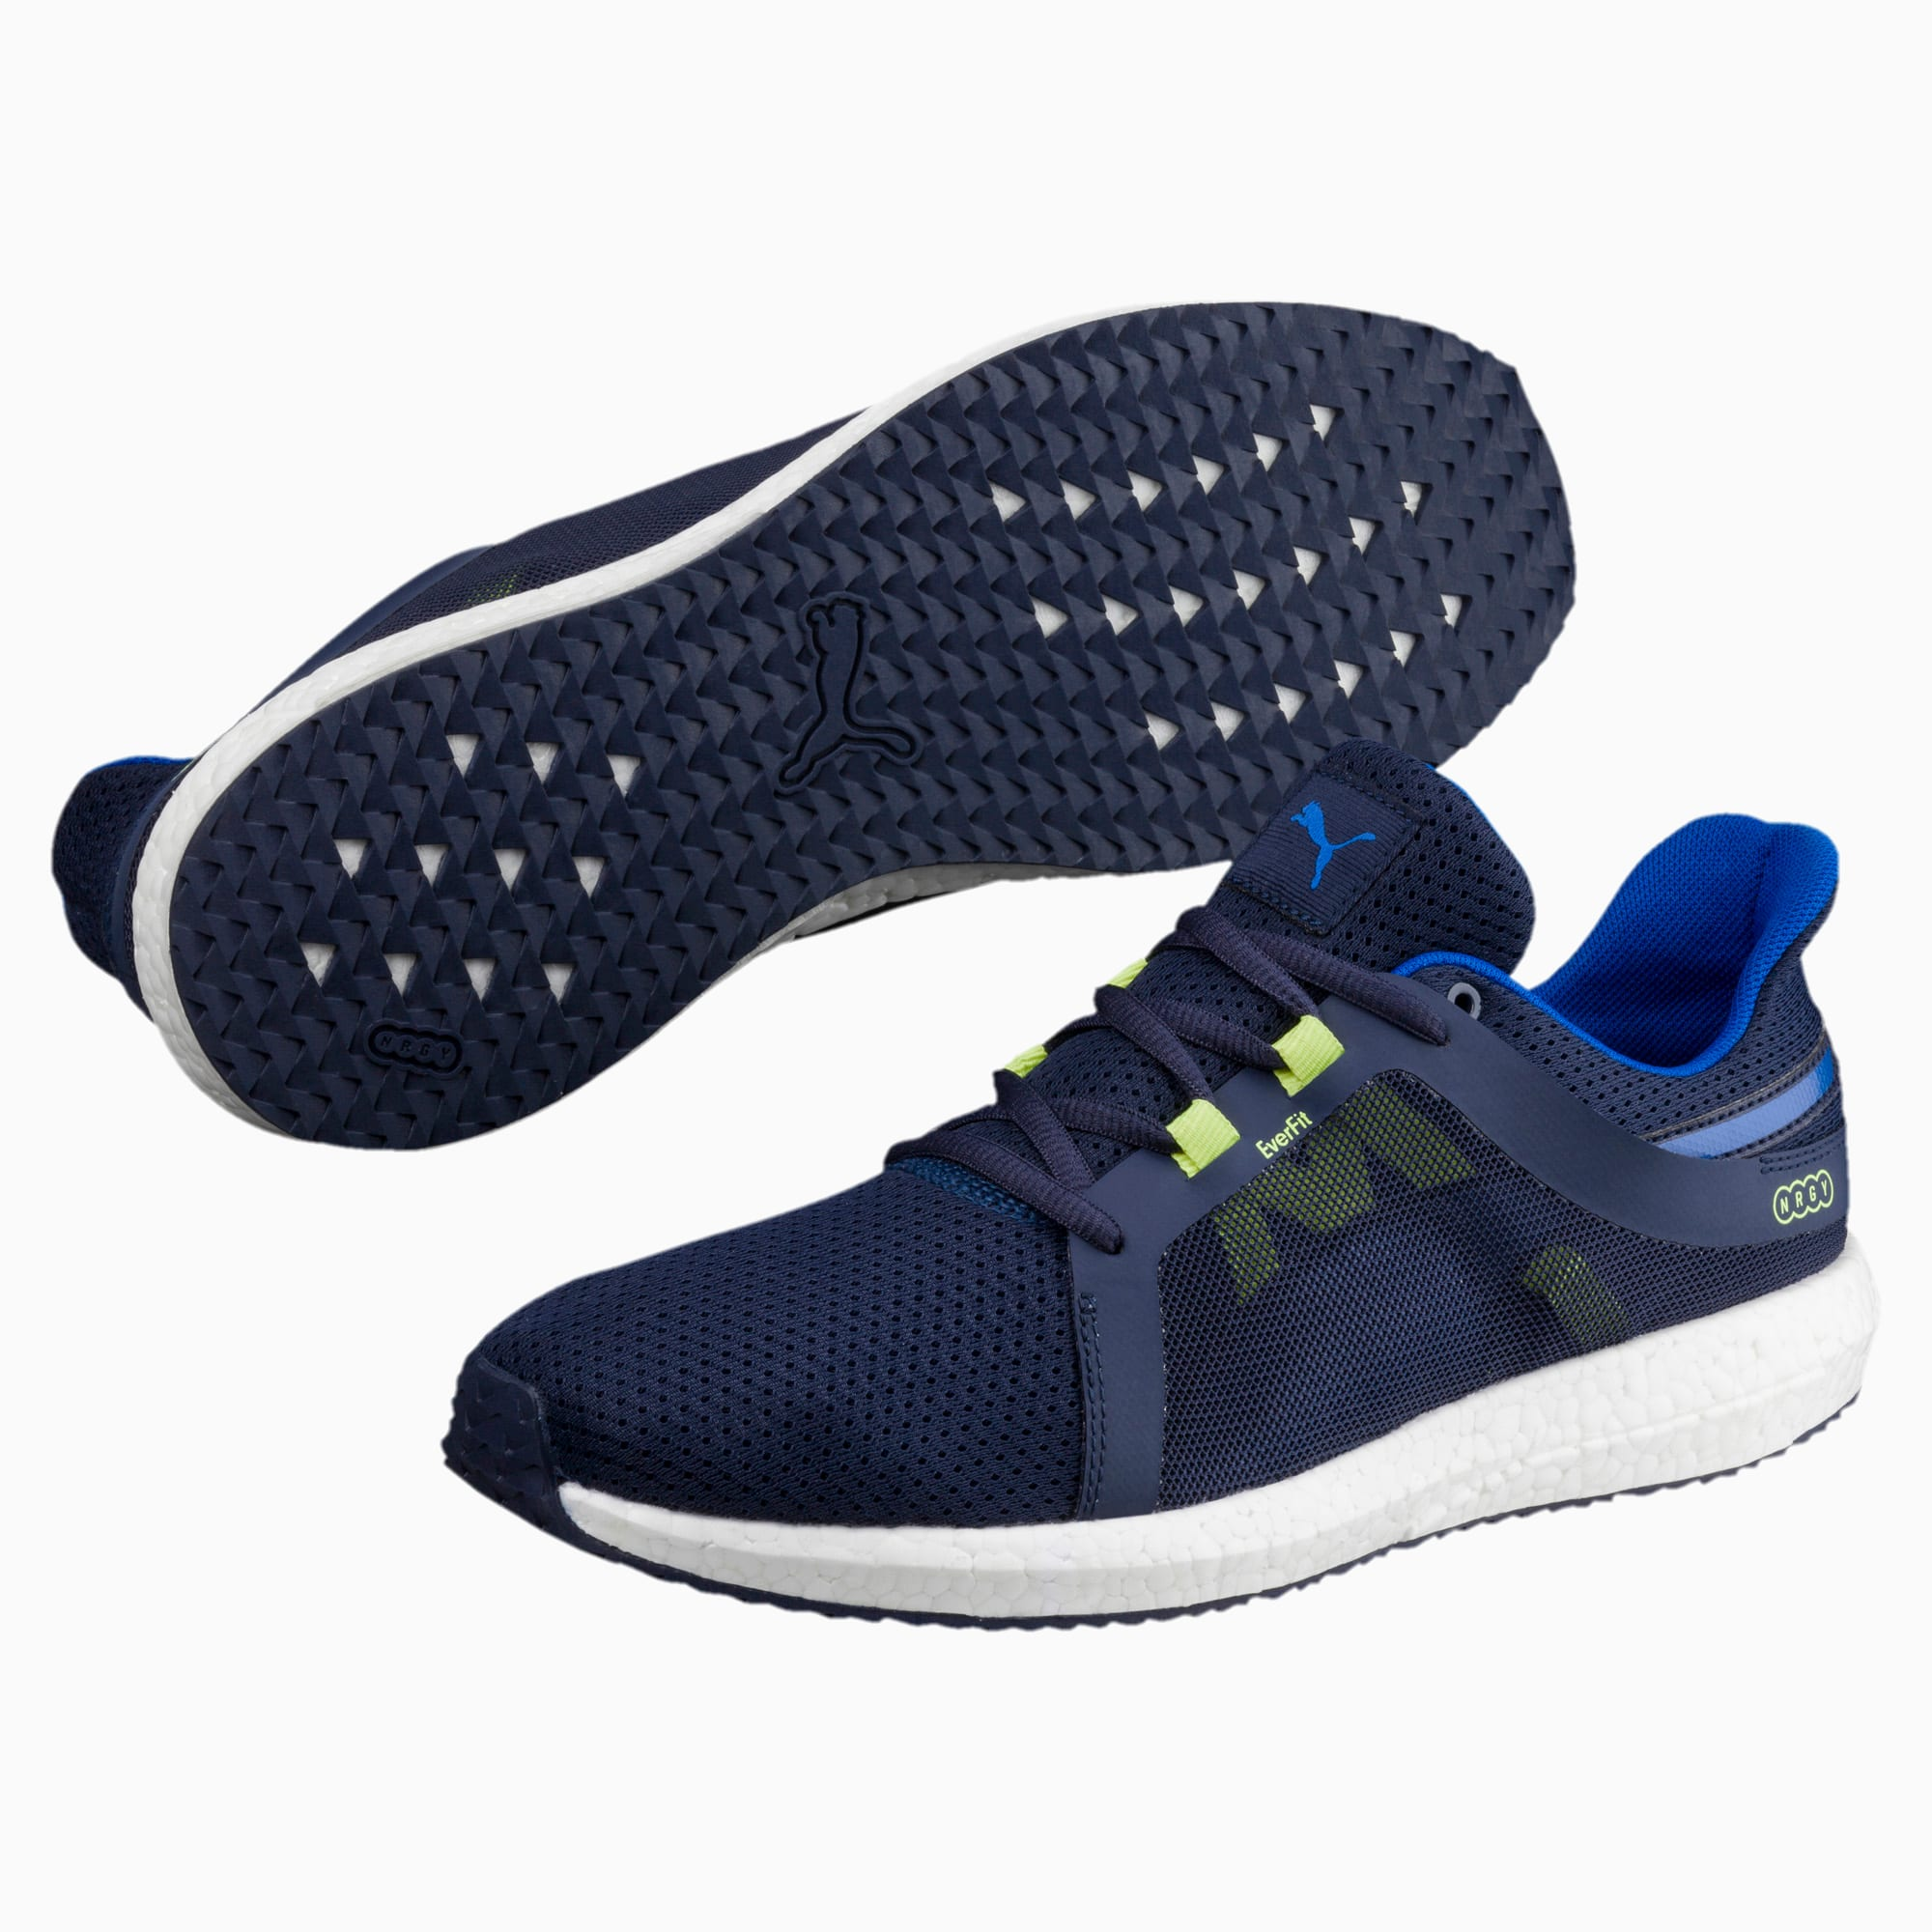 Mega NRGY Turbo 2 Men's Trainers